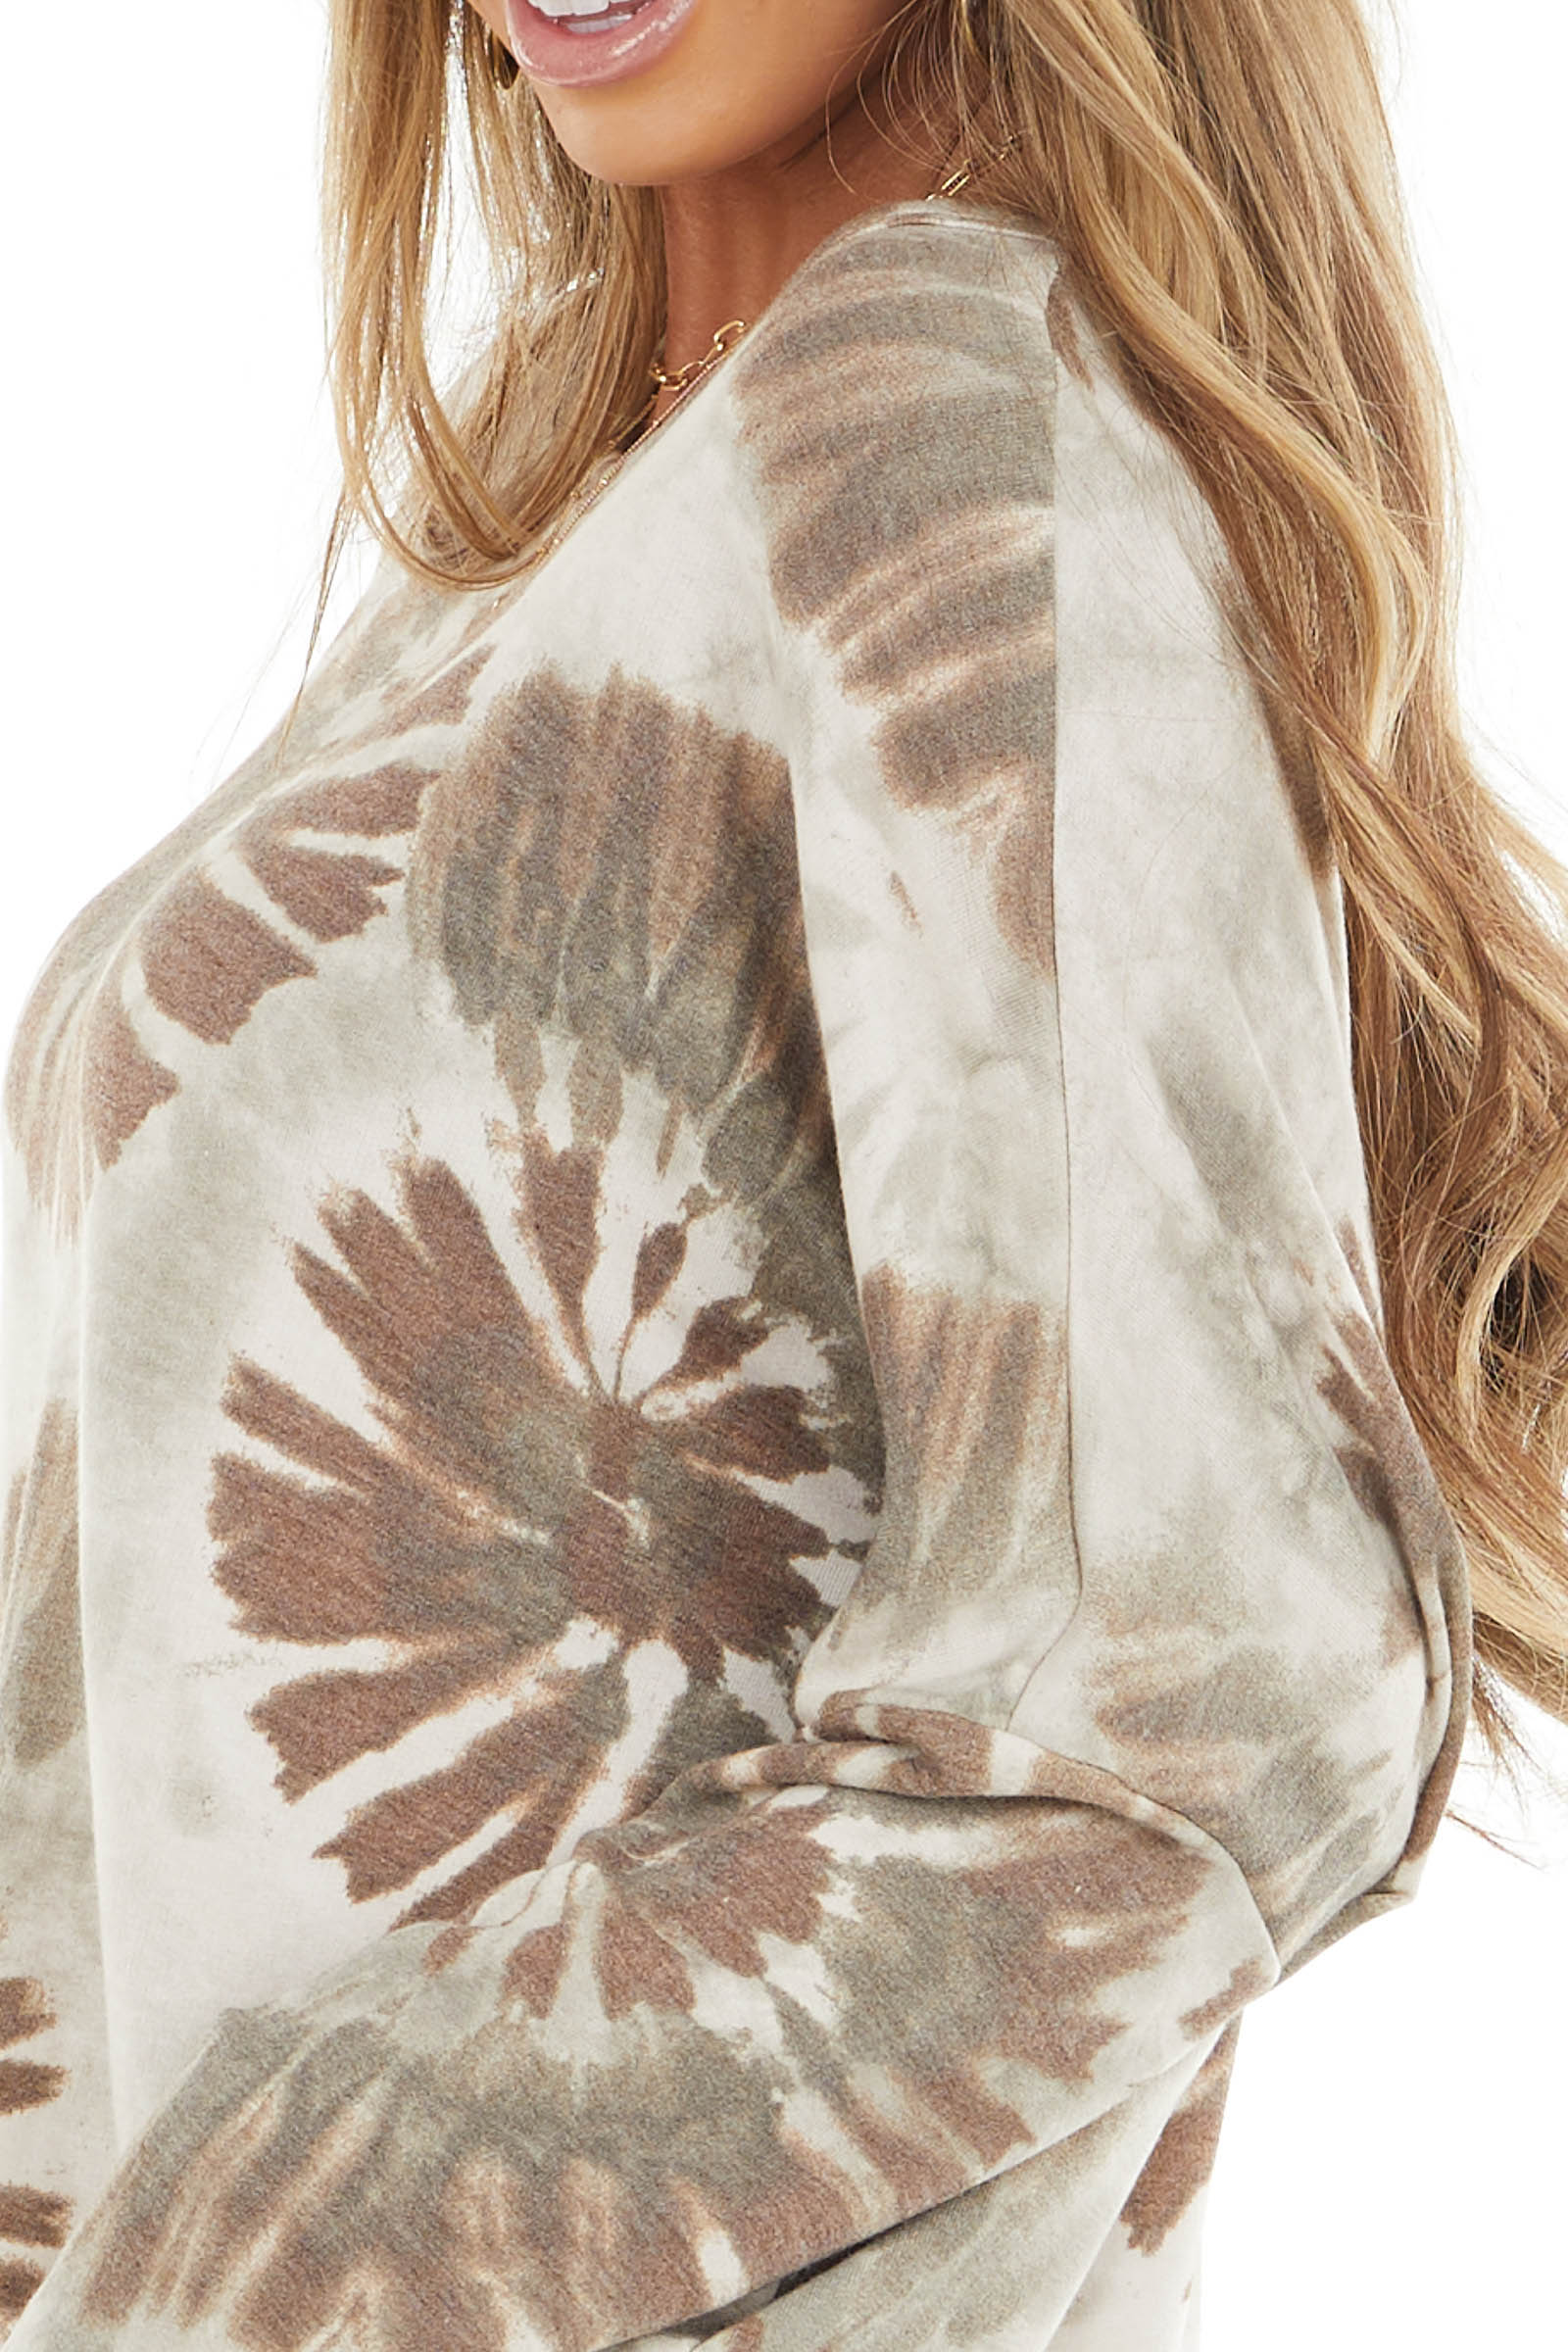 Oatmeal and Mocha Tie Dye Oversized Top with Long Sleeves